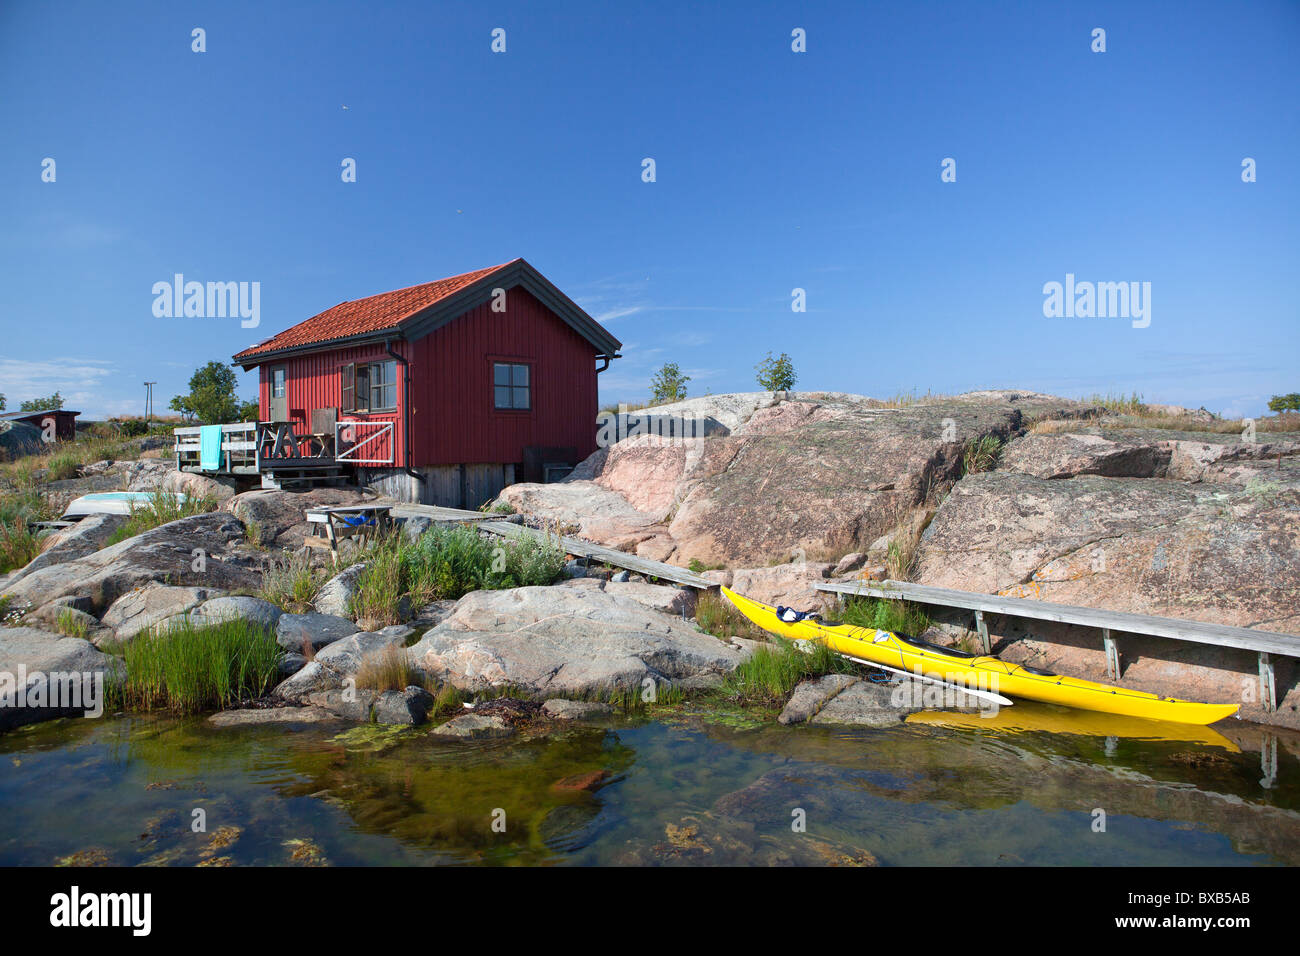 Yellow canoe moored next to small cottage house - Stock Image